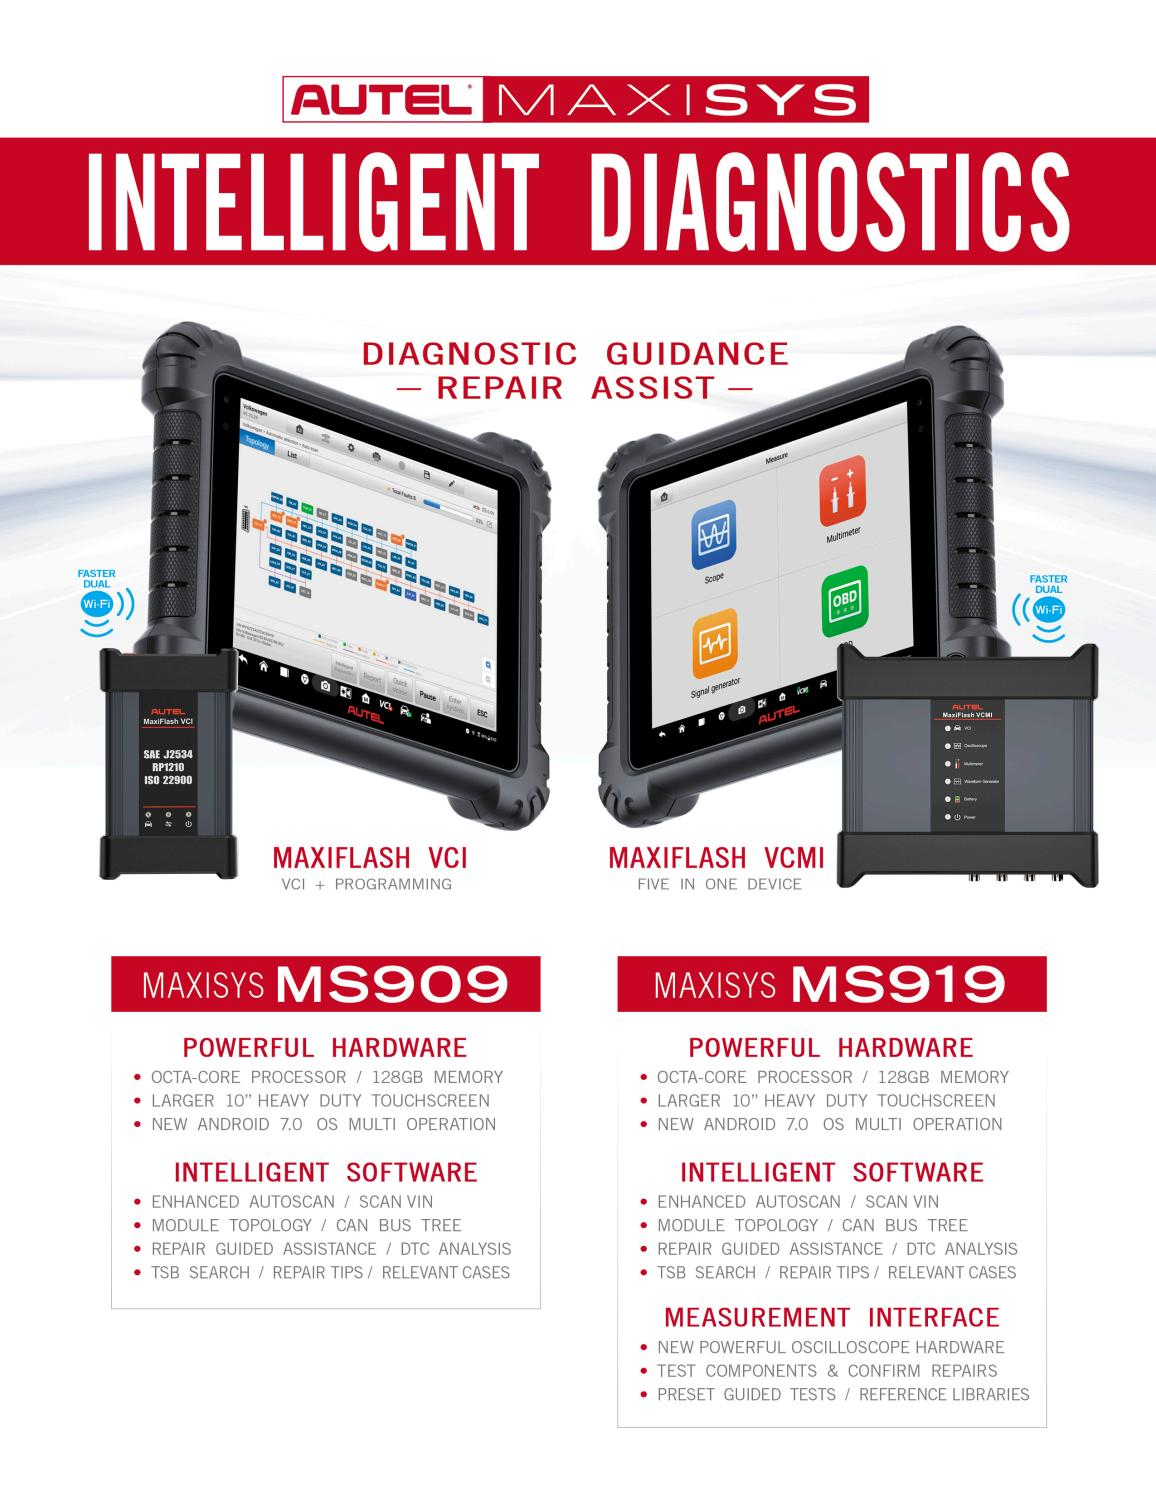 AUTEL MAXISYS - MS919 - MS909 by evoautopro - issuu